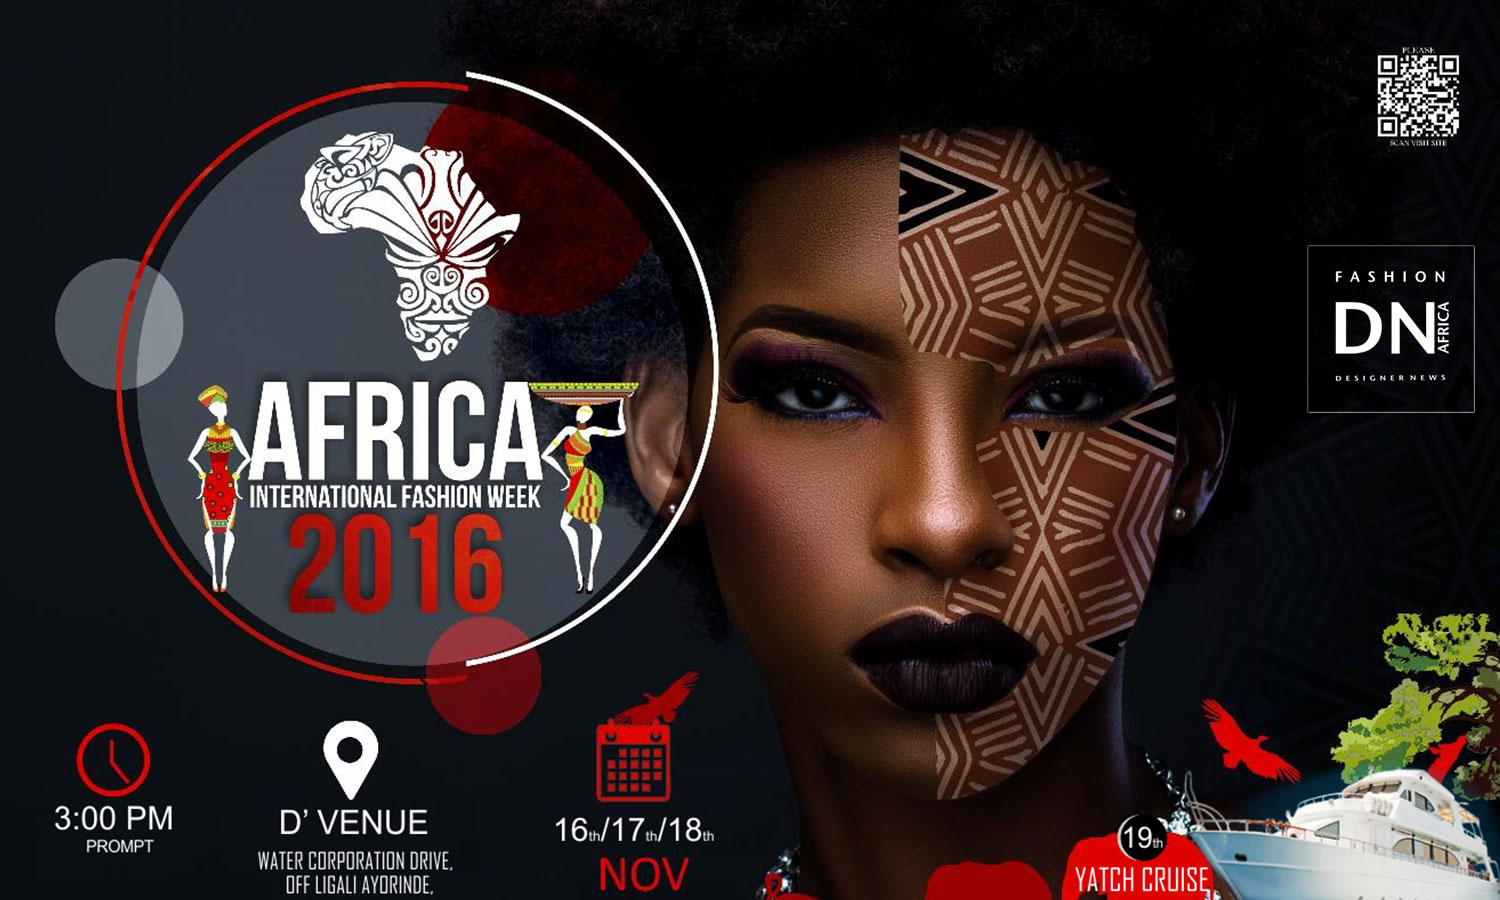 africa-international-fashion-week-2016-DNAFRICA